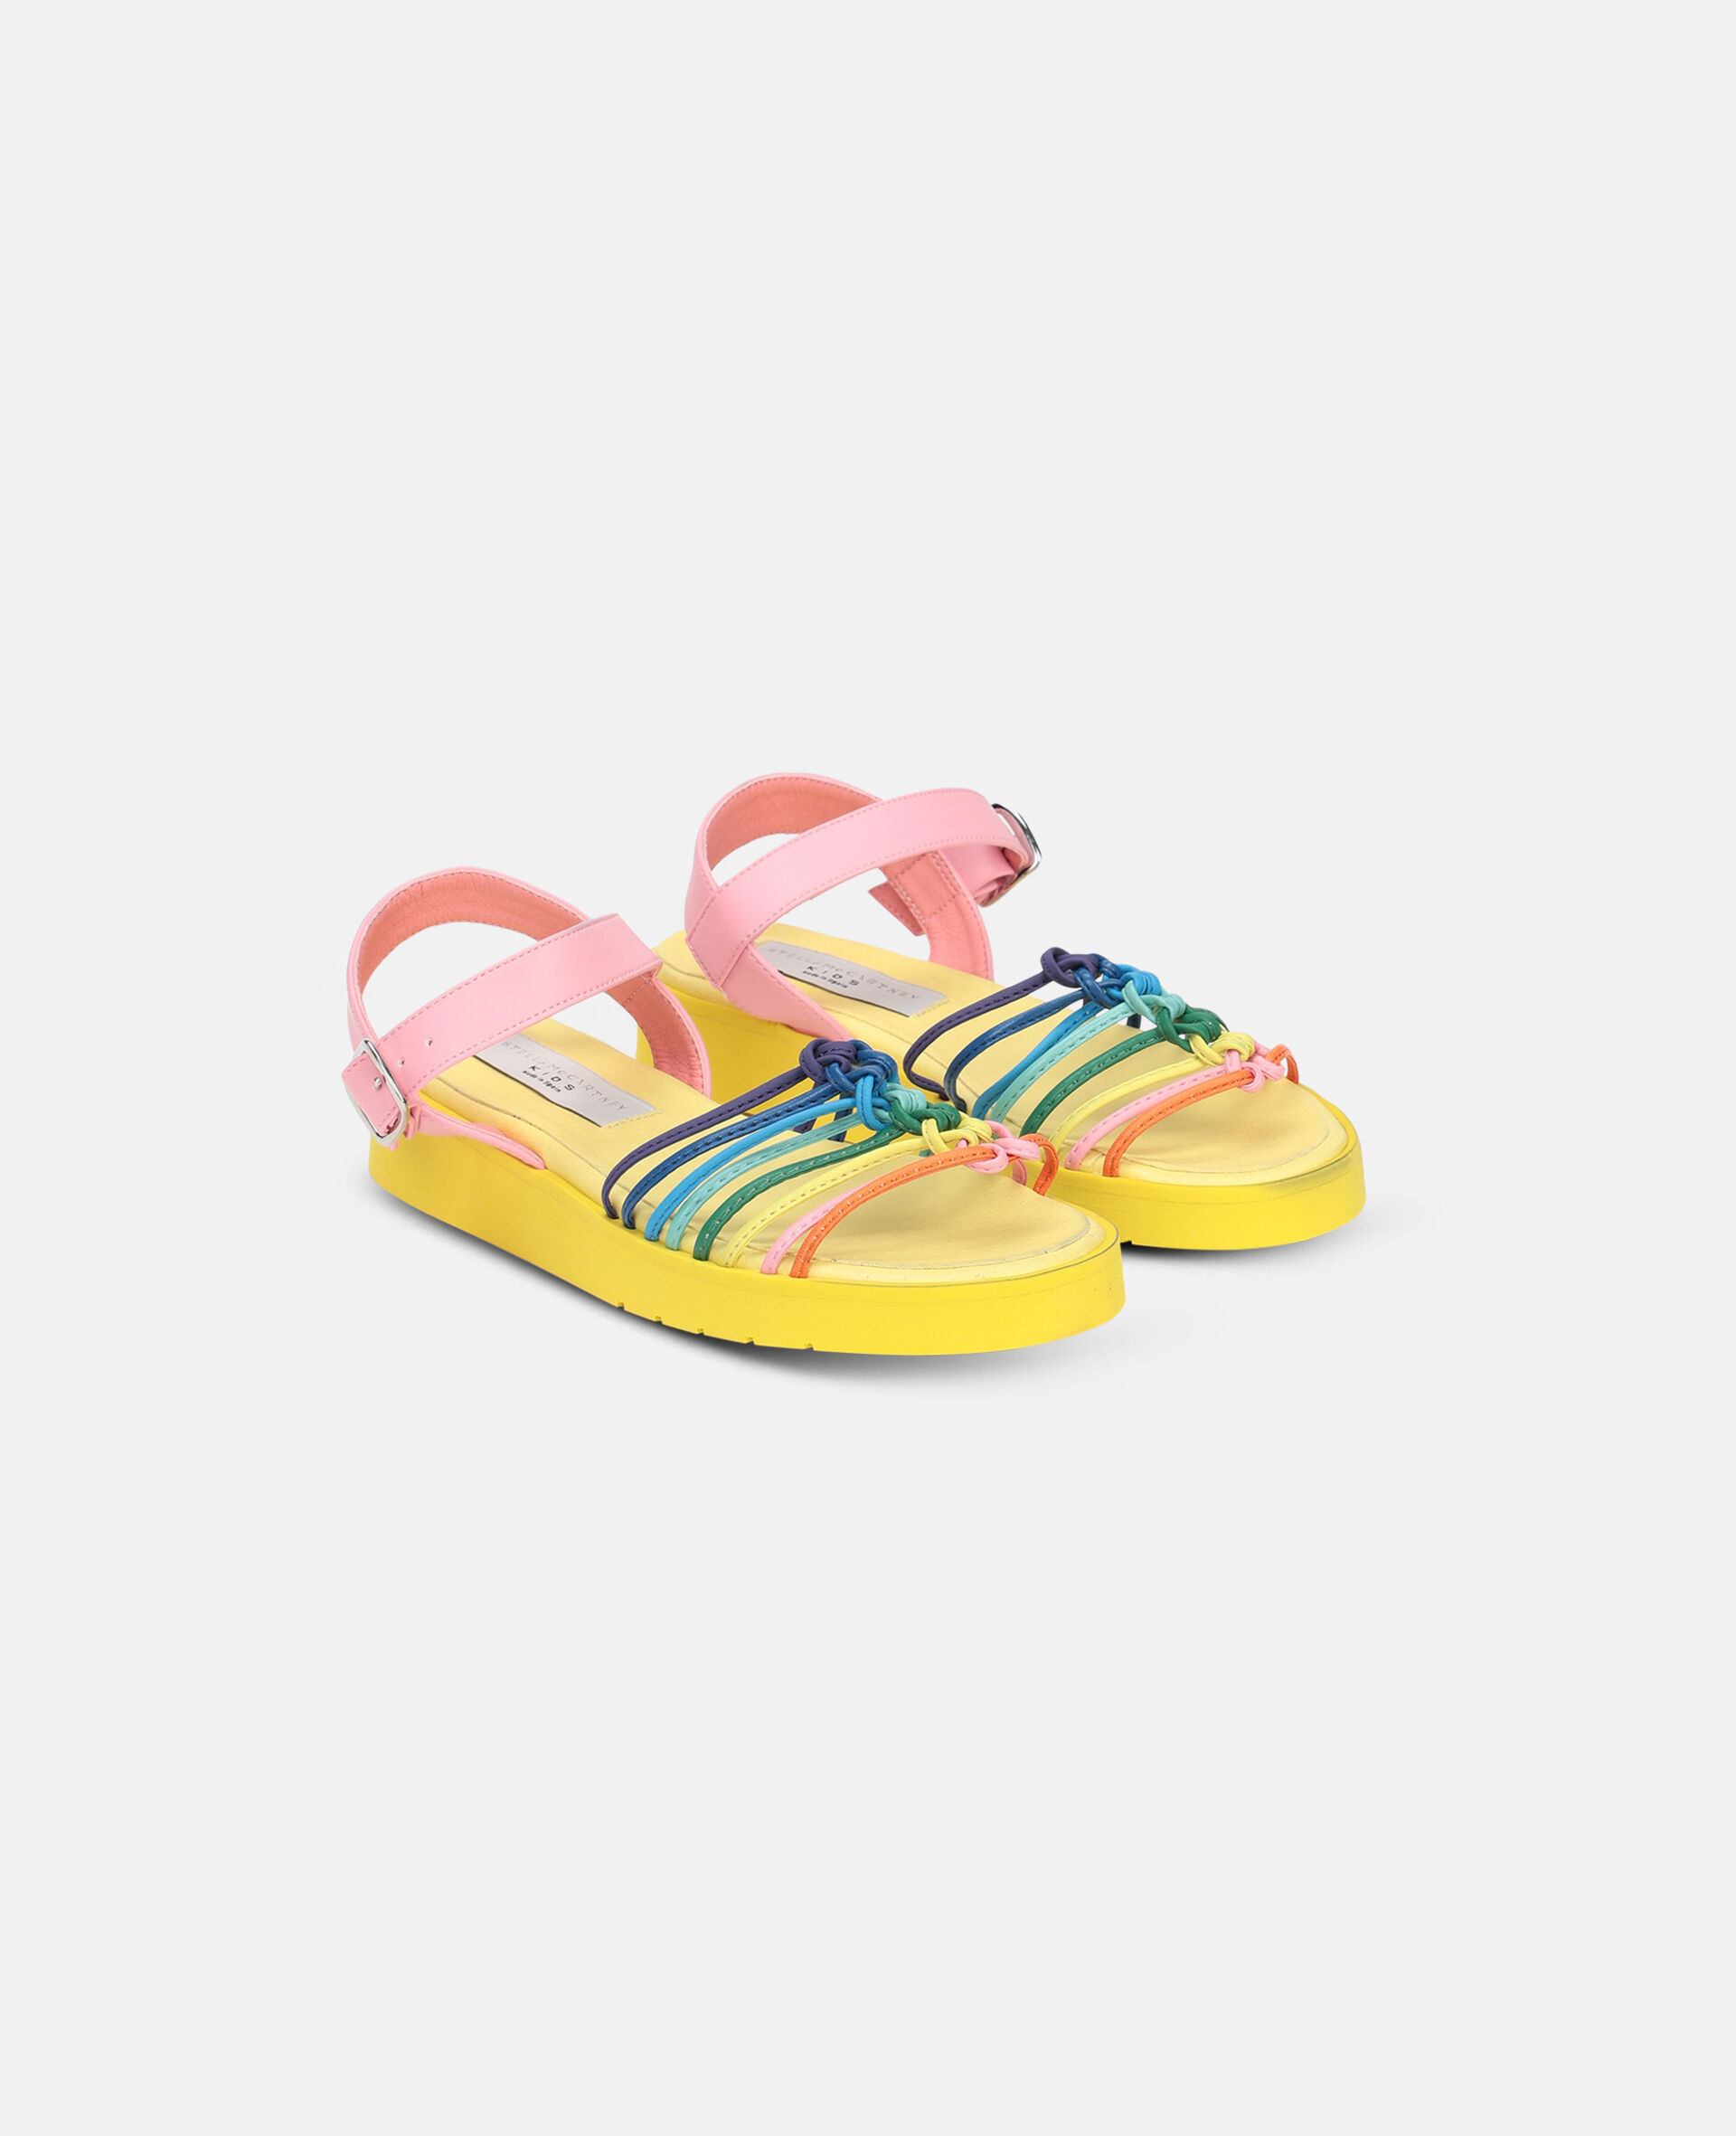 Multicolor Knotted Sandals -Multicolour-large image number 3